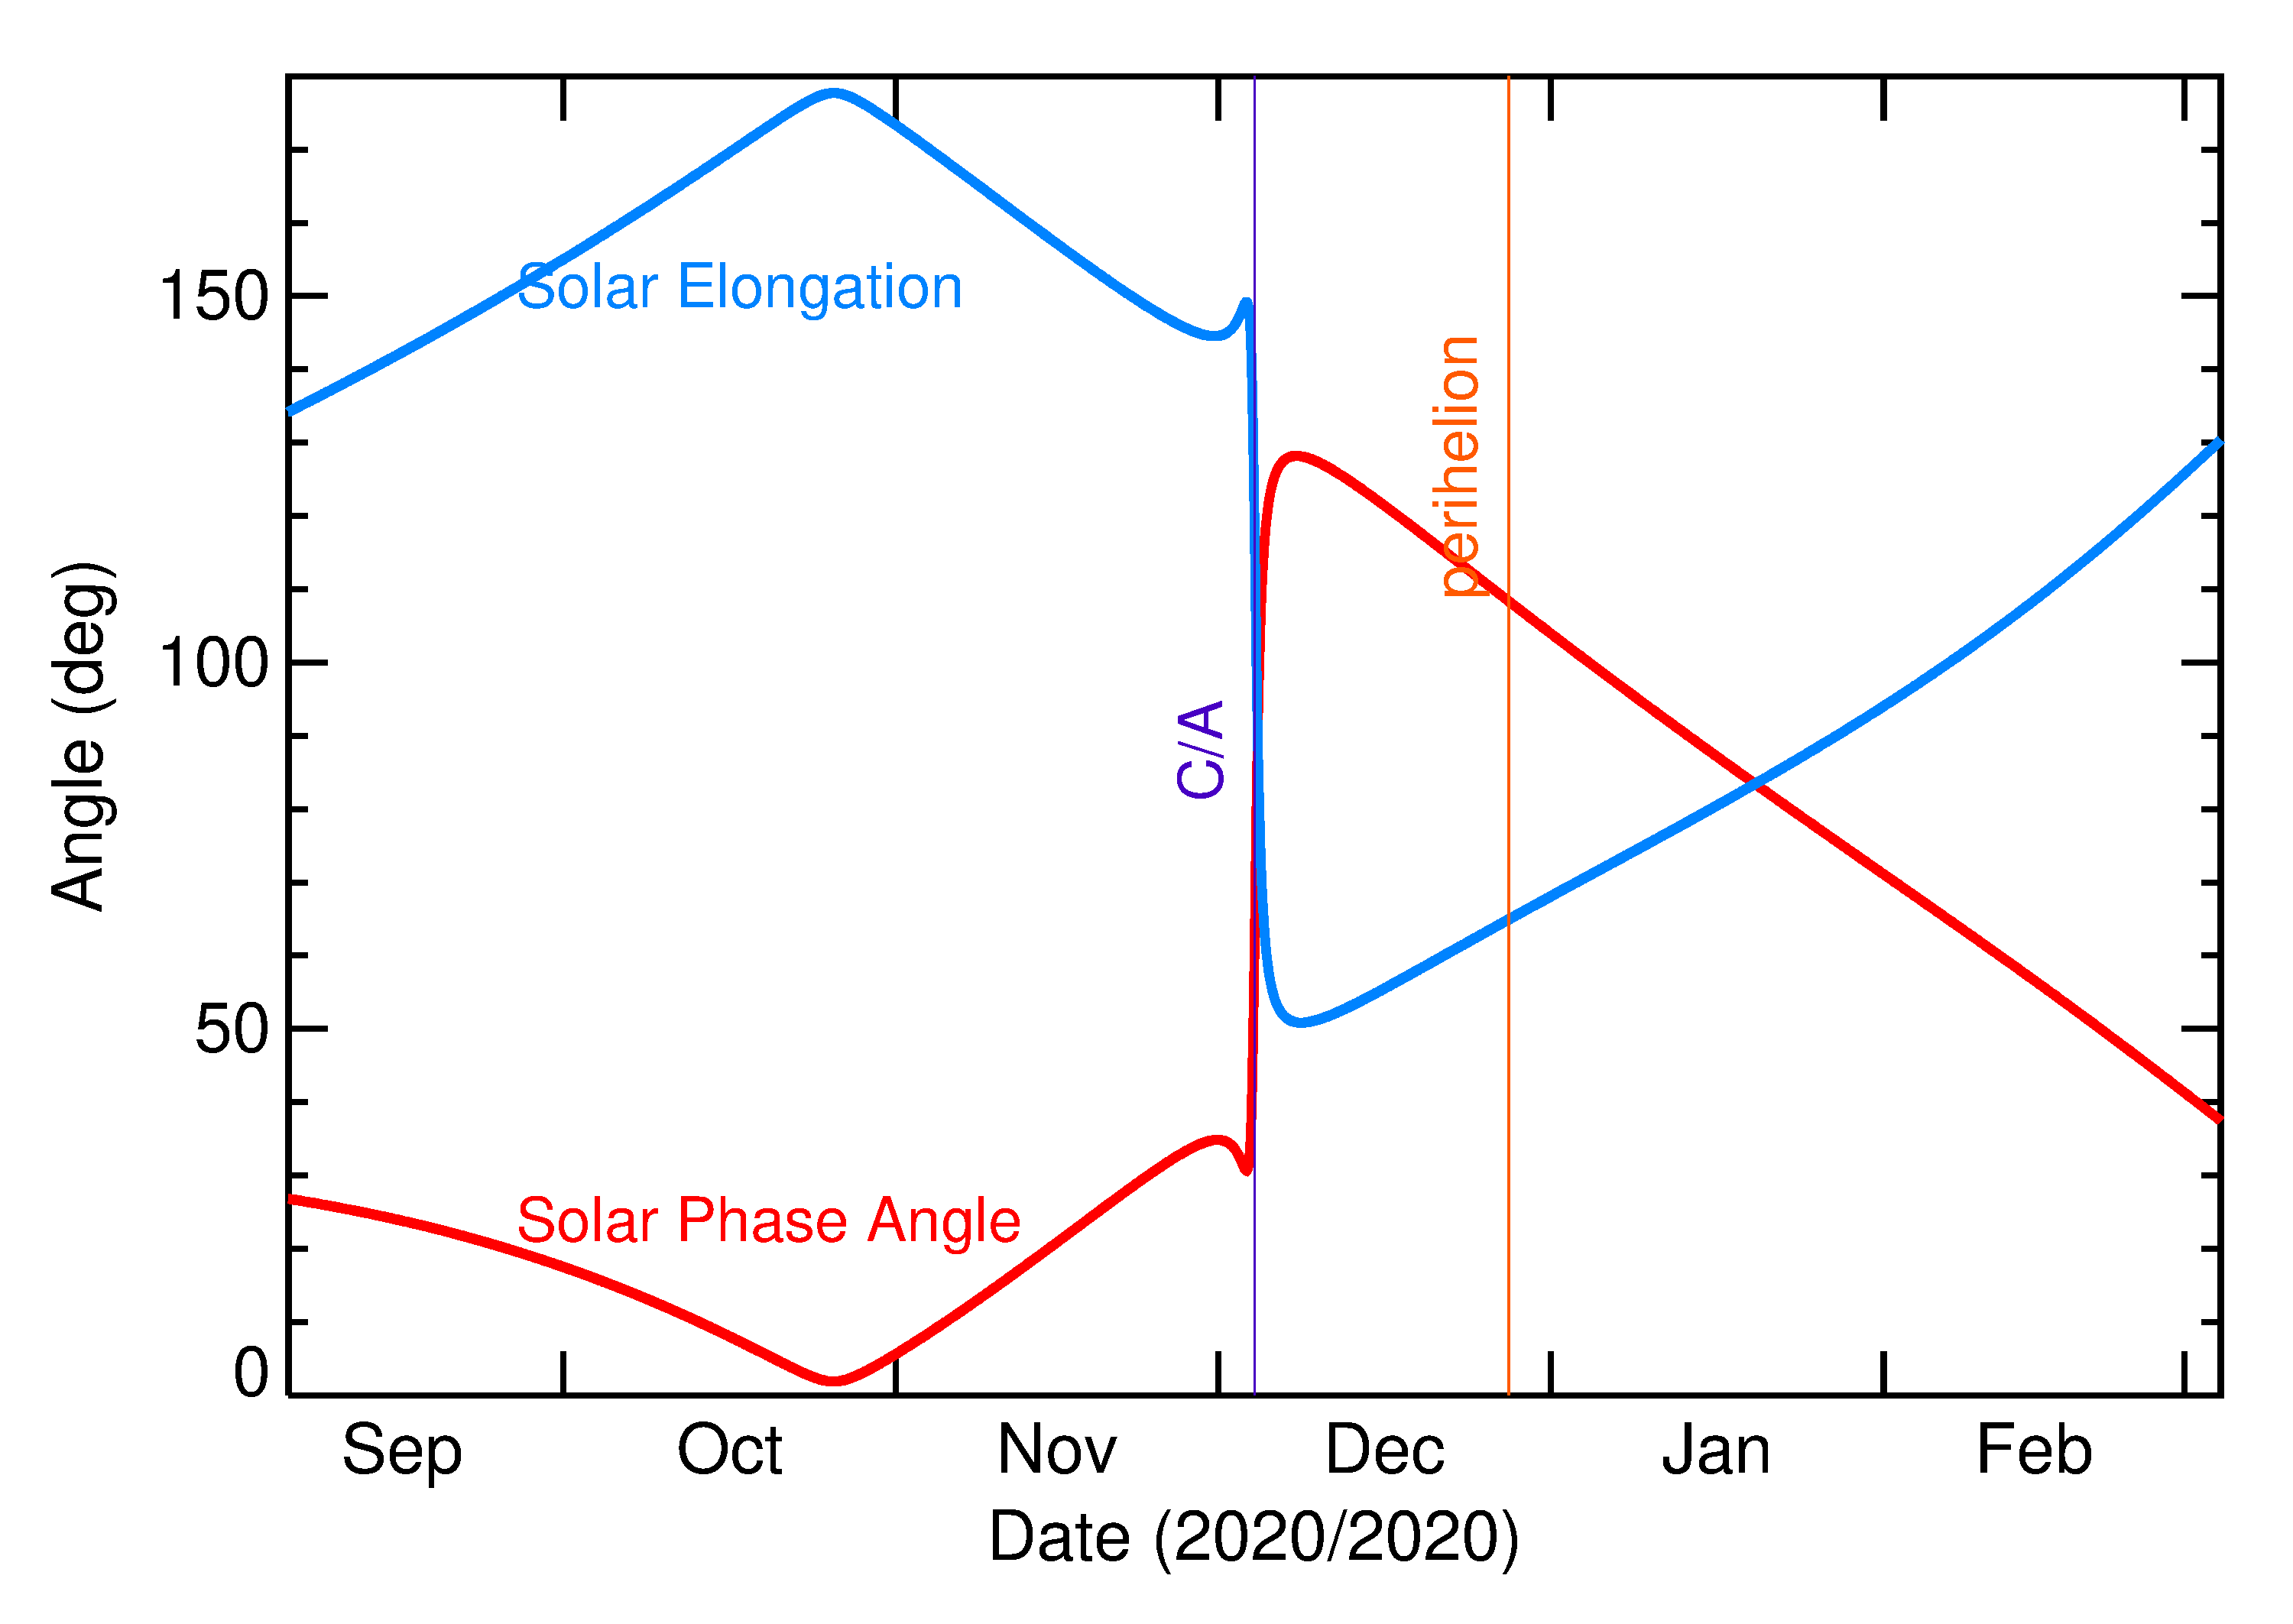 Solar Elongation and Solar Phase Angle of 2020 VZ6 in the months around closest approach